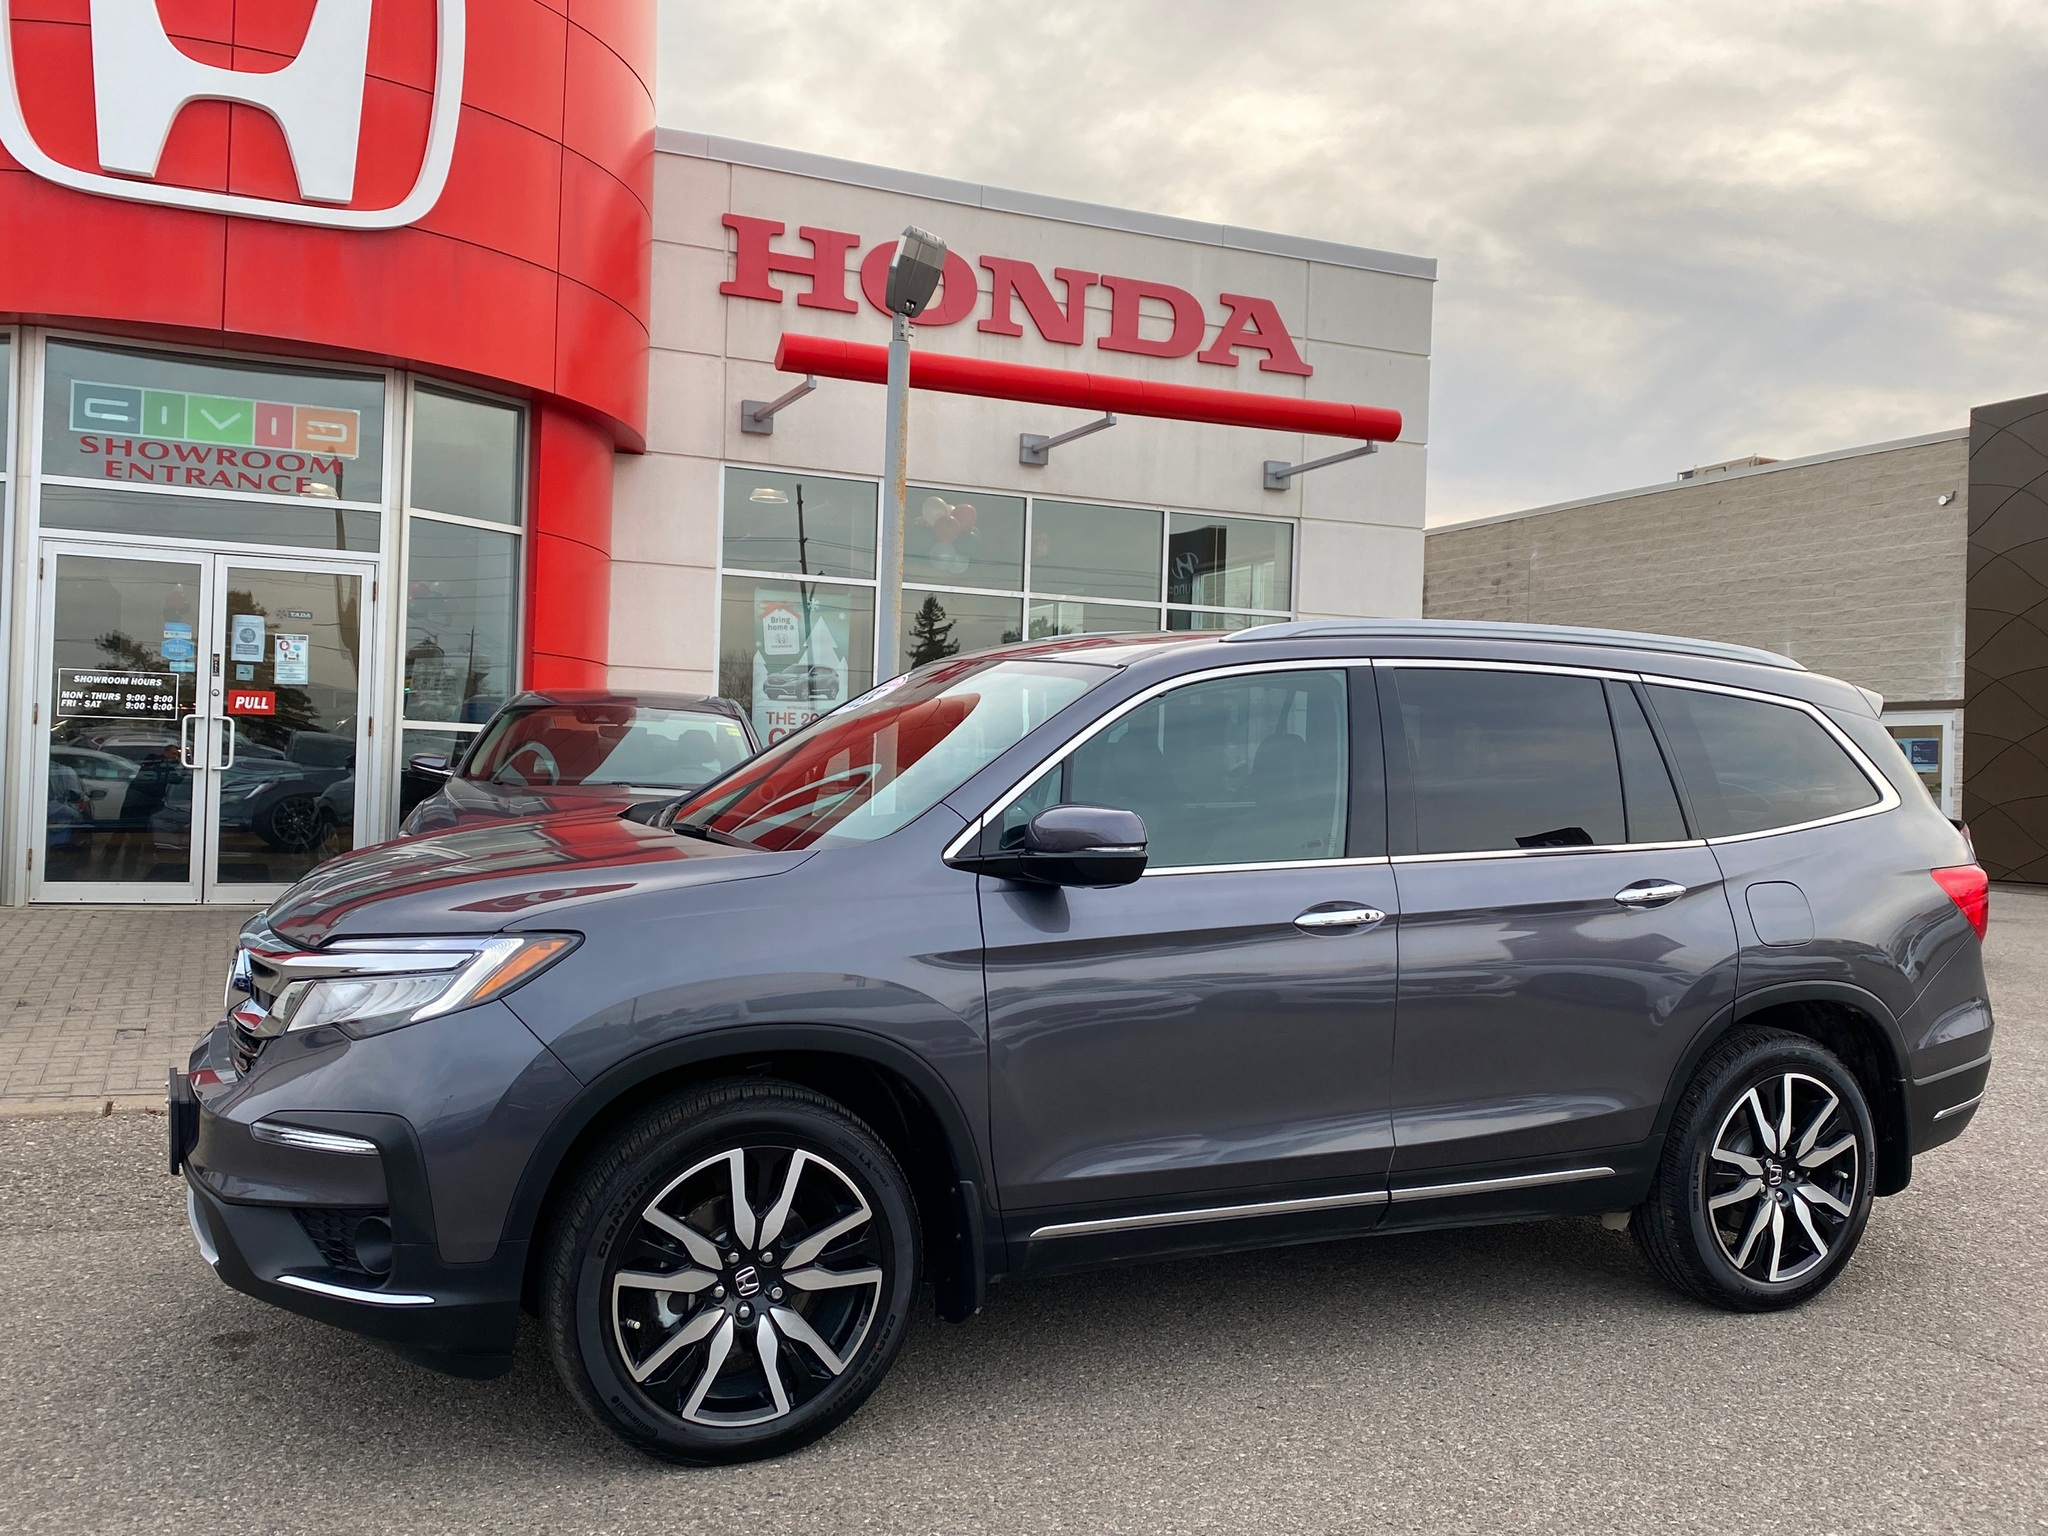 2020 Honda Pilot Touring 6 500 Km With Tow Package 48349513 Georgetown On Used2020 Honda Pilot Touring 6 500 Km With Tow Package 48349513 Georgetown On Used 5fnyf6h63lb506036